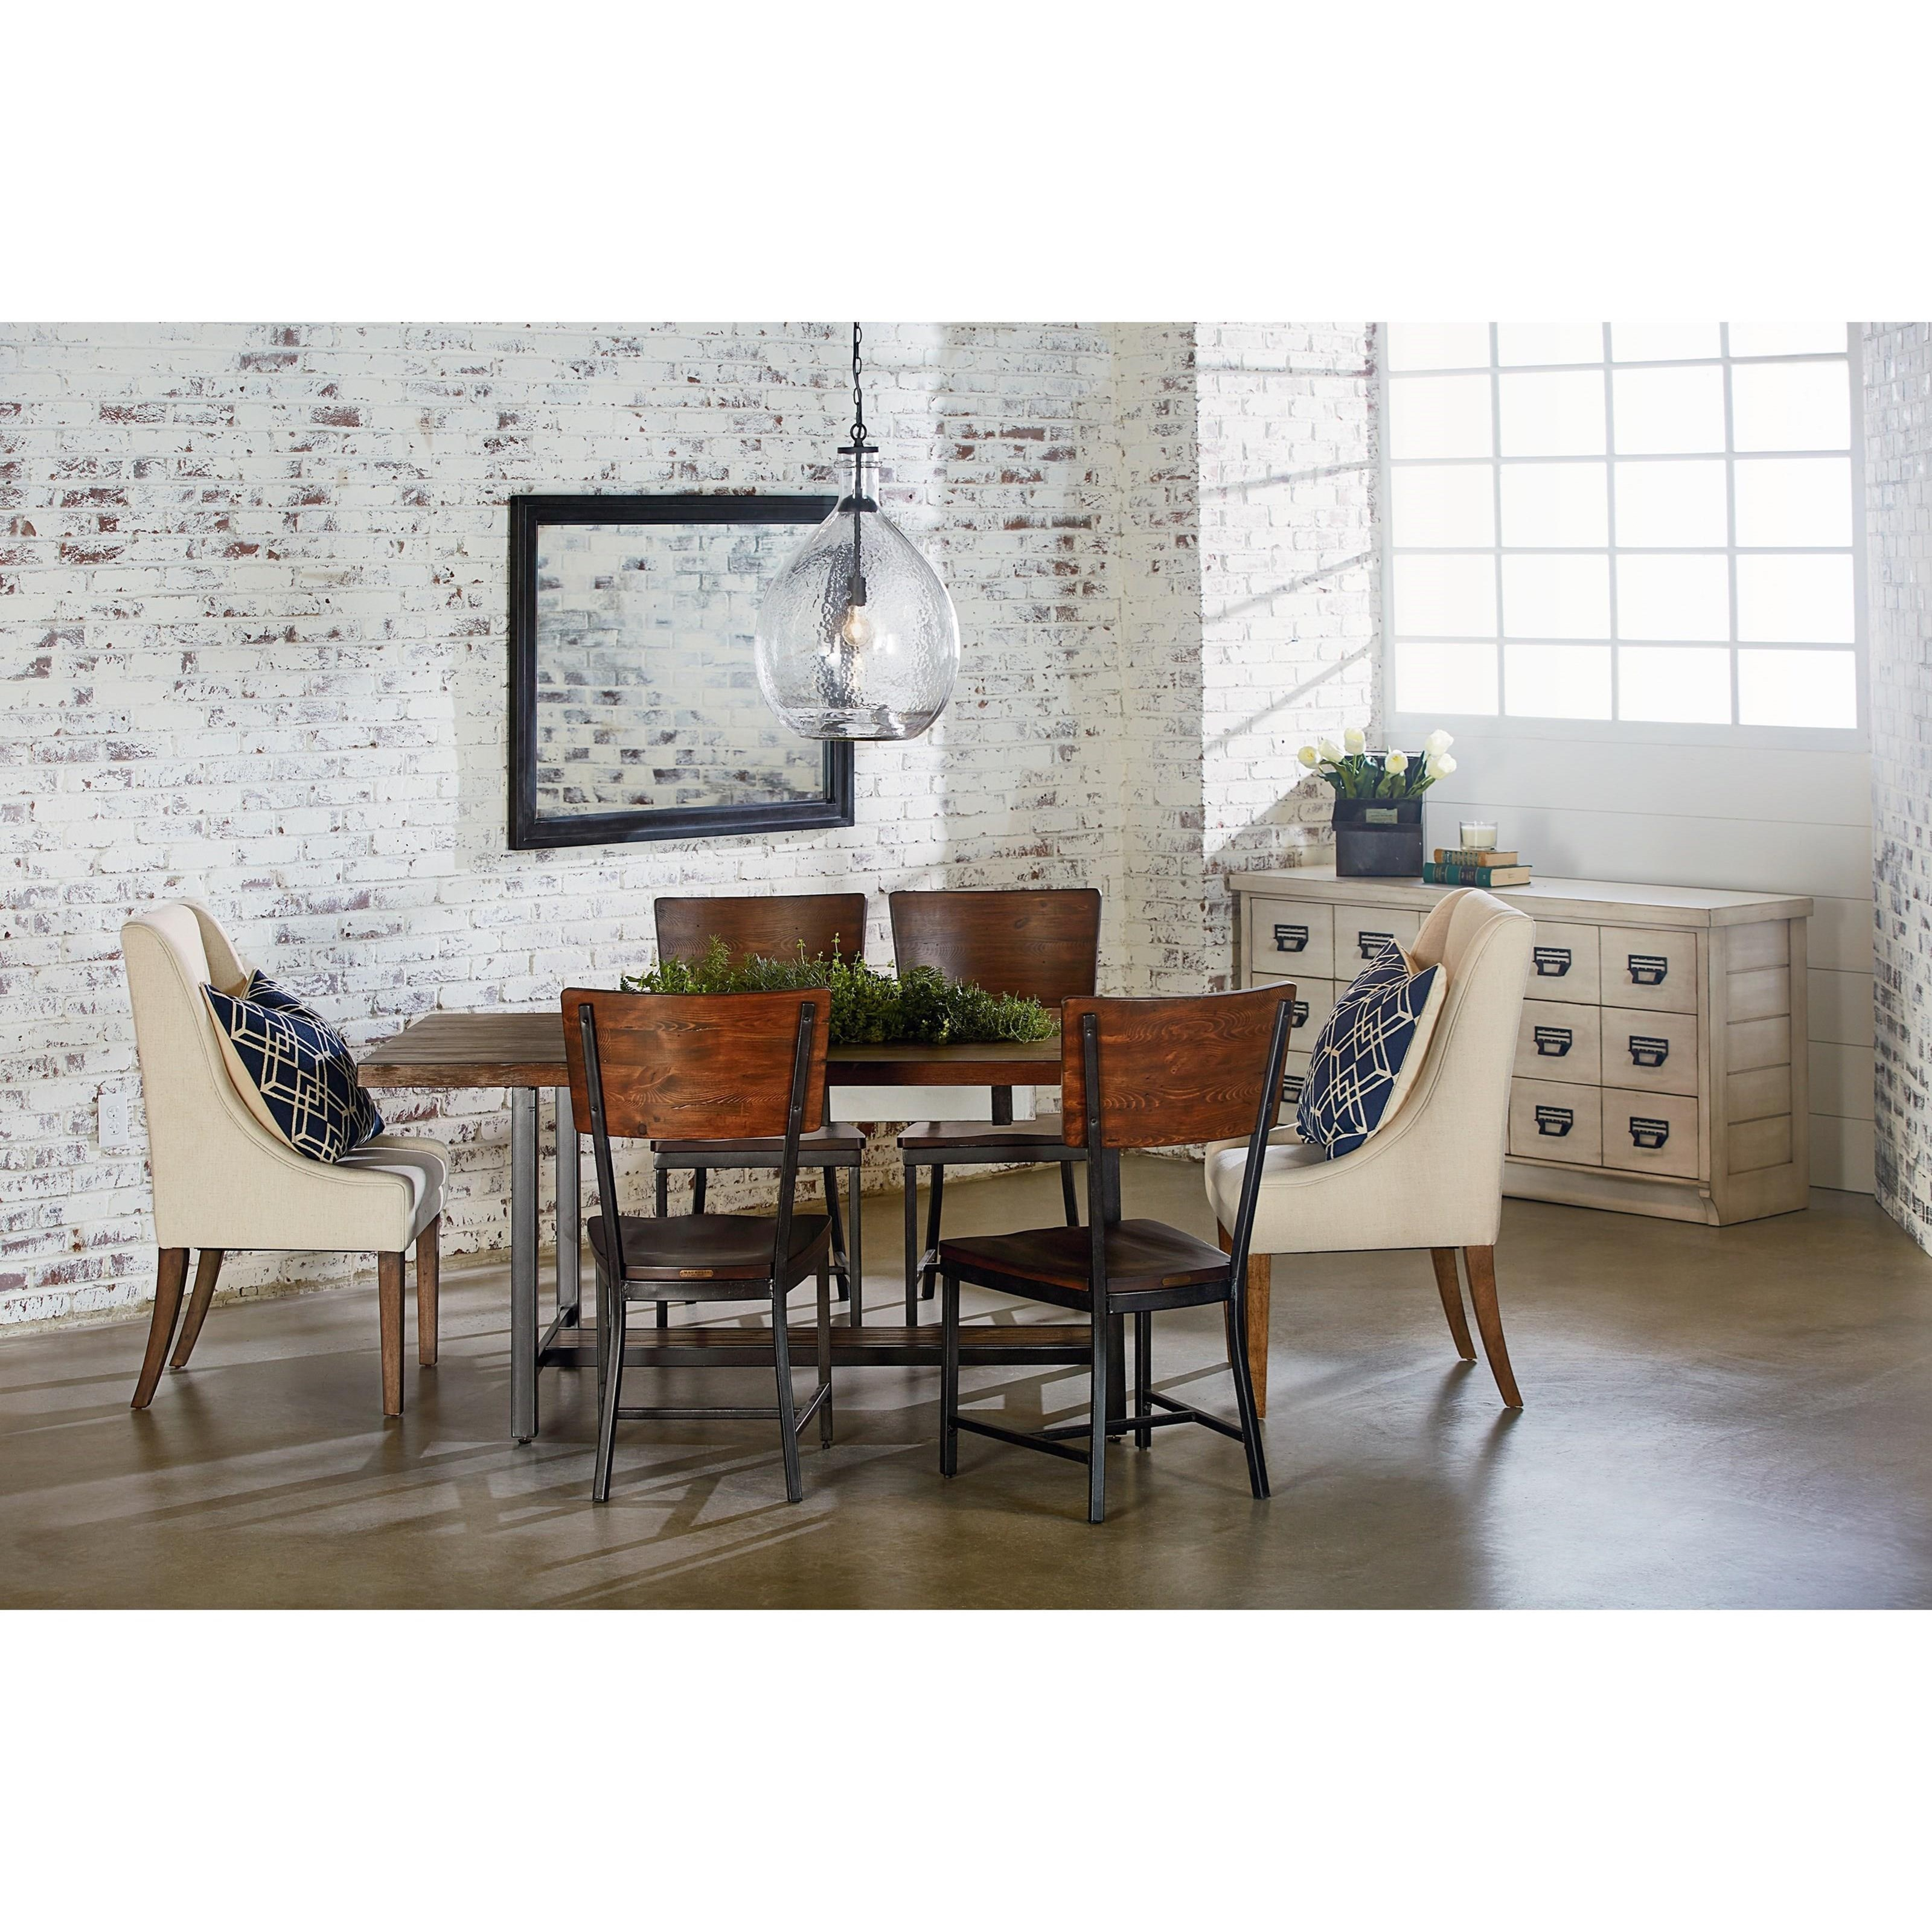 Zinc Finish Furniture Dining Table With Zinc Planter And Milk Crate Finish By Magnolia